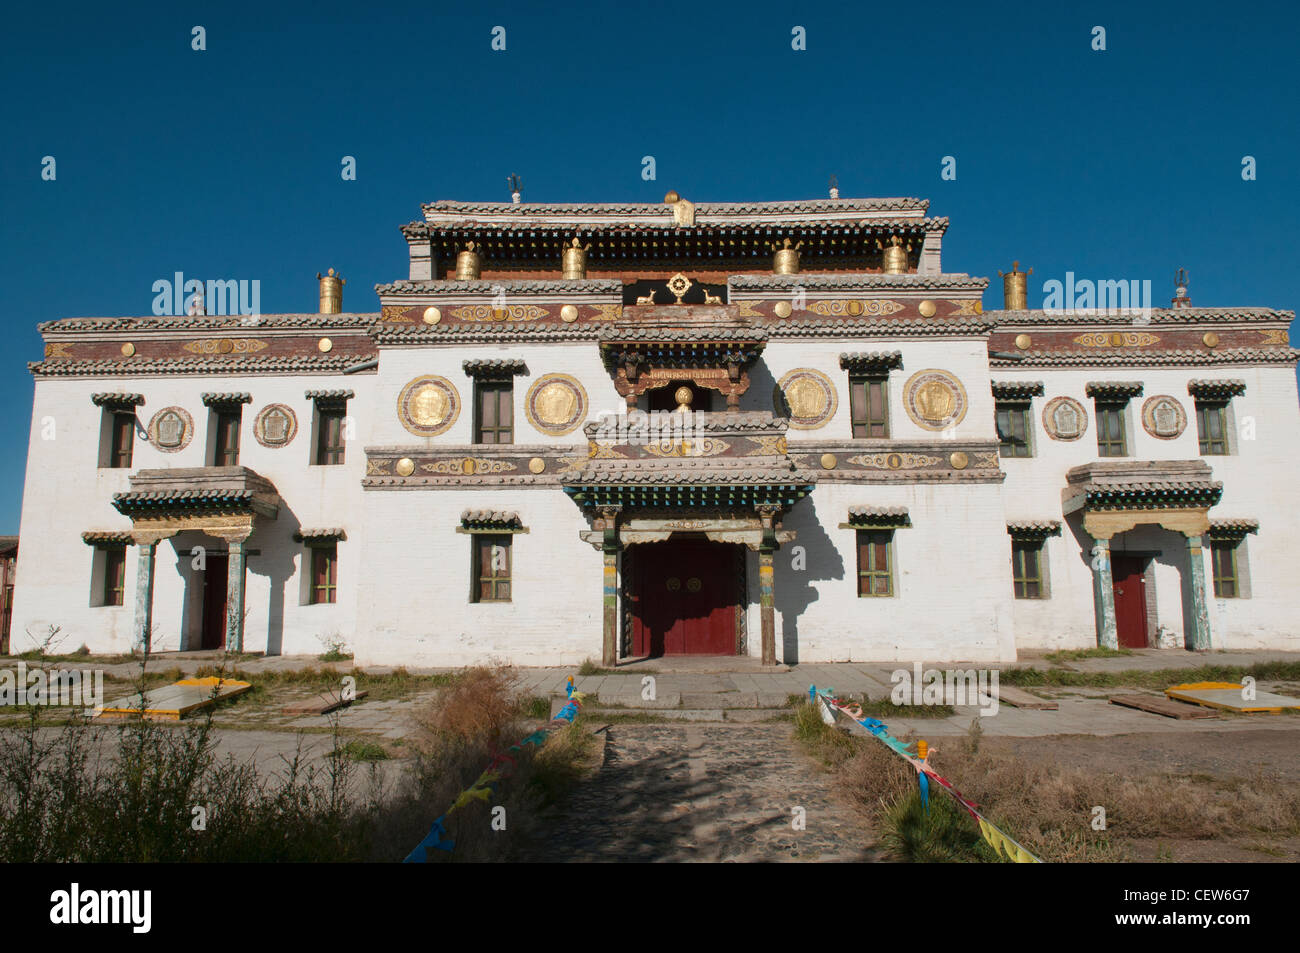 temple at Erdene Zuu Monastery in Central Mongolia - Stock Image